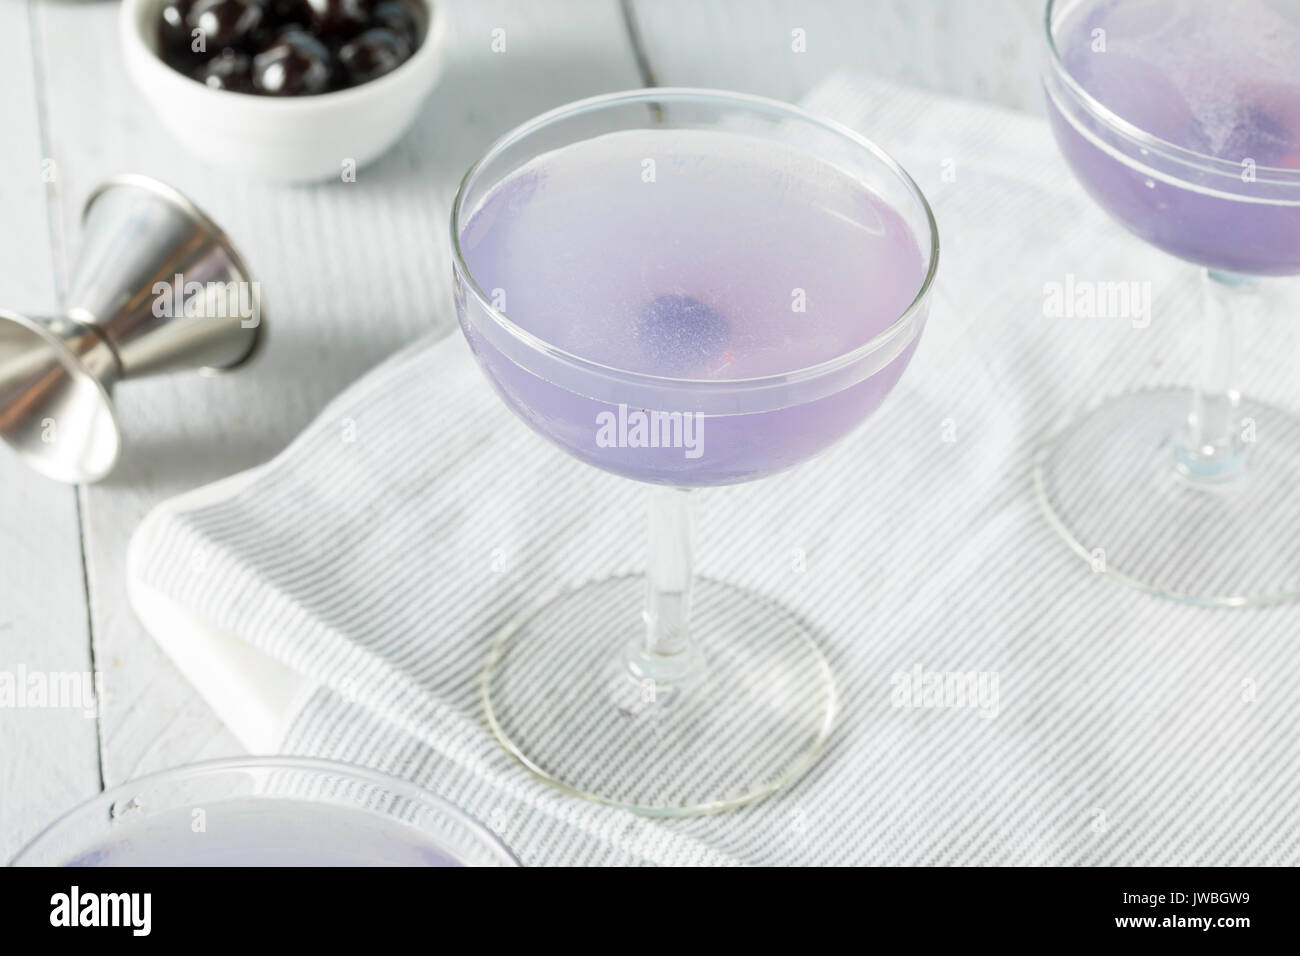 Sweet Violet Aviation Cocktail with a Cherry Garnish - Stock Image